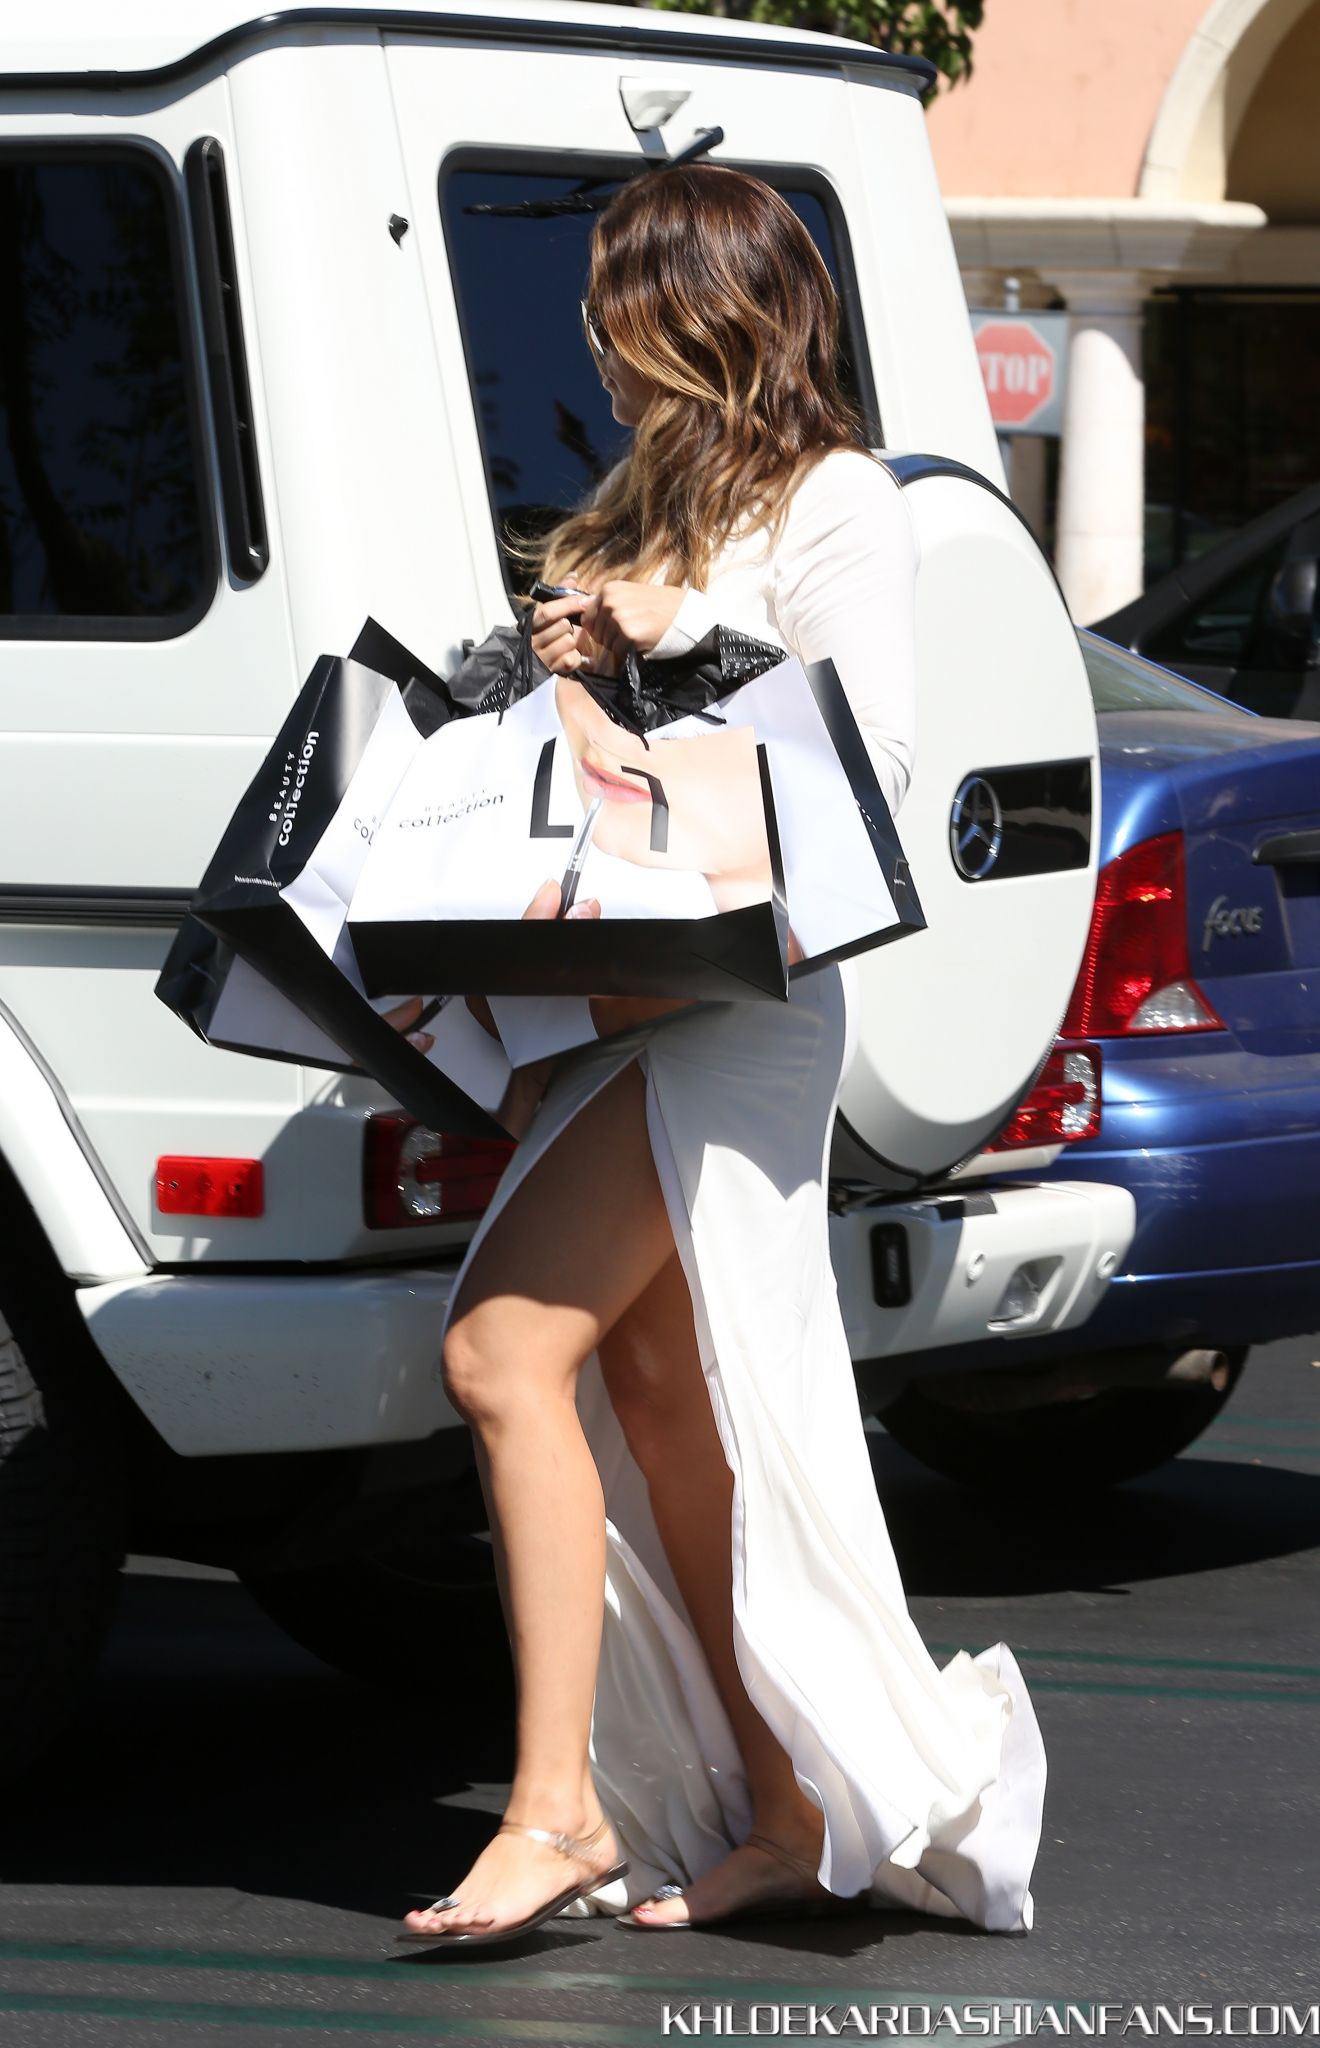 Khloe Kardashian in White Dress - Shopping in LA